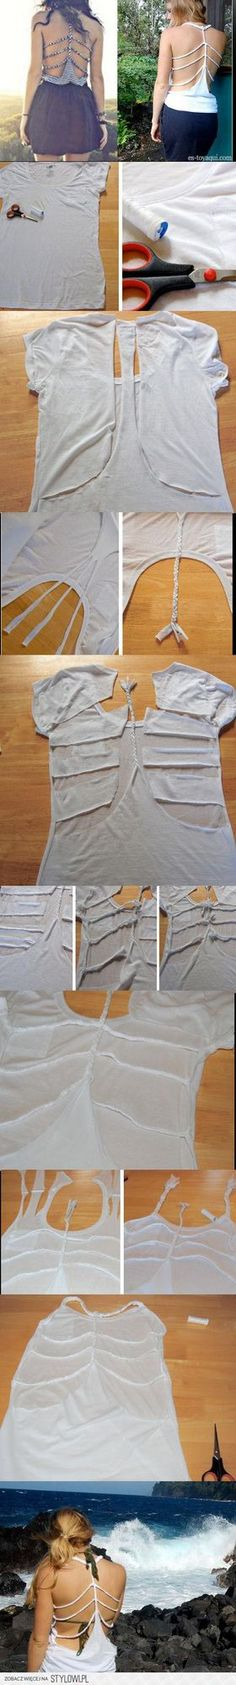 No sewing involved for this custom t shirt project. You can easily turn an old T-shirt into a top. It is getting hot, but this top is very cool. Dig out your old T-shirts and give them a new life for